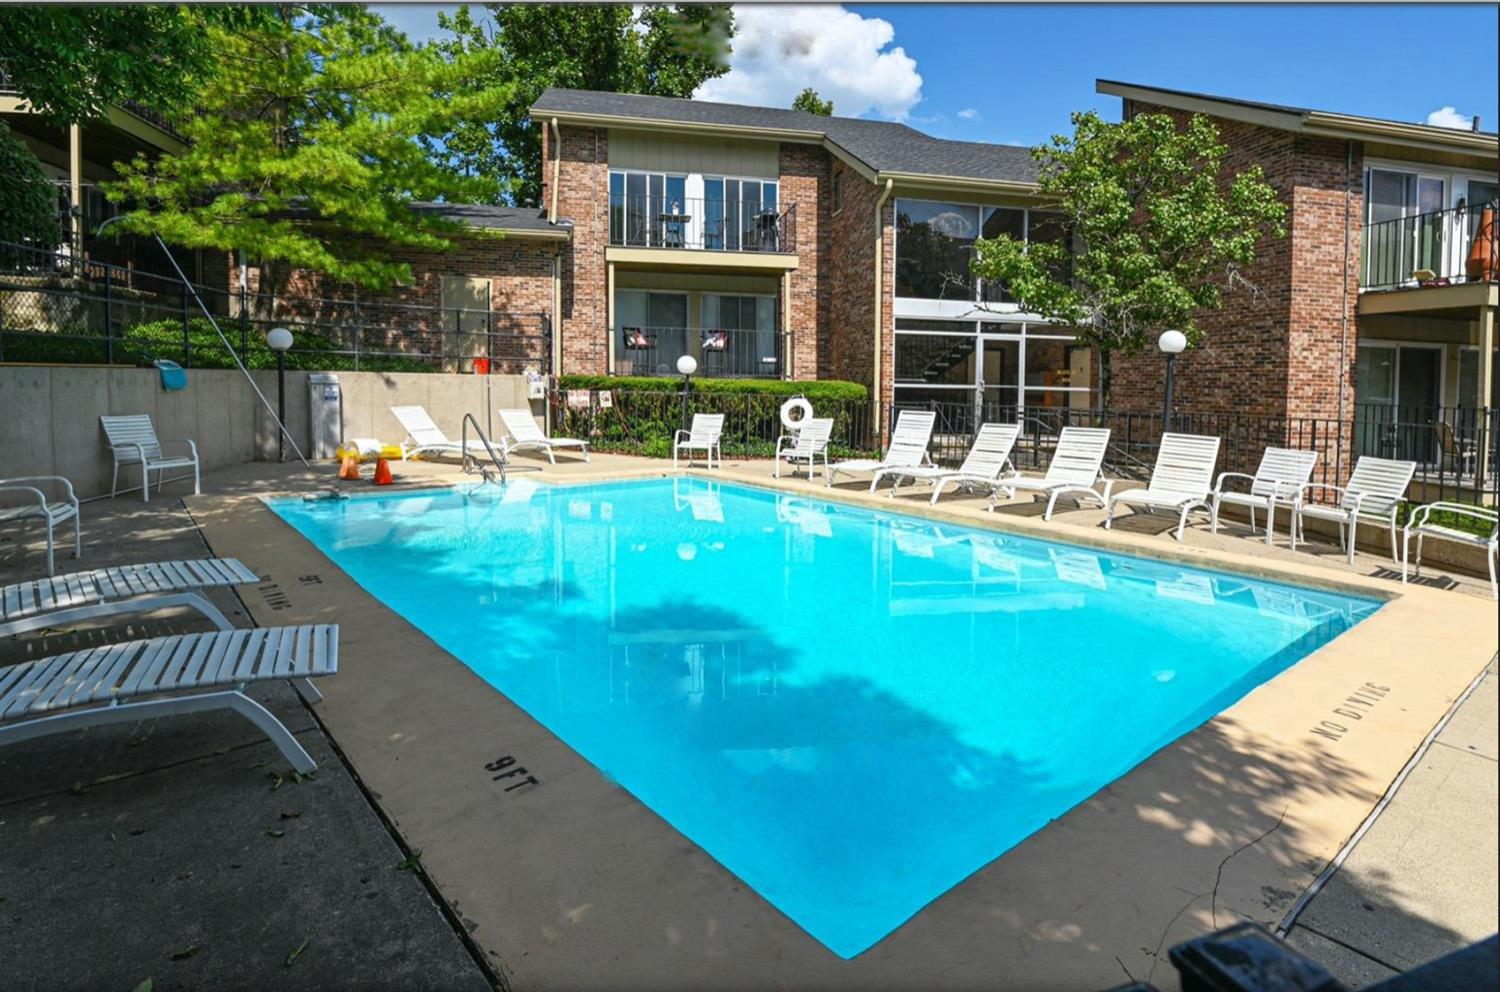 The pool is a fabulous central feature and is a great place for residents to relax!